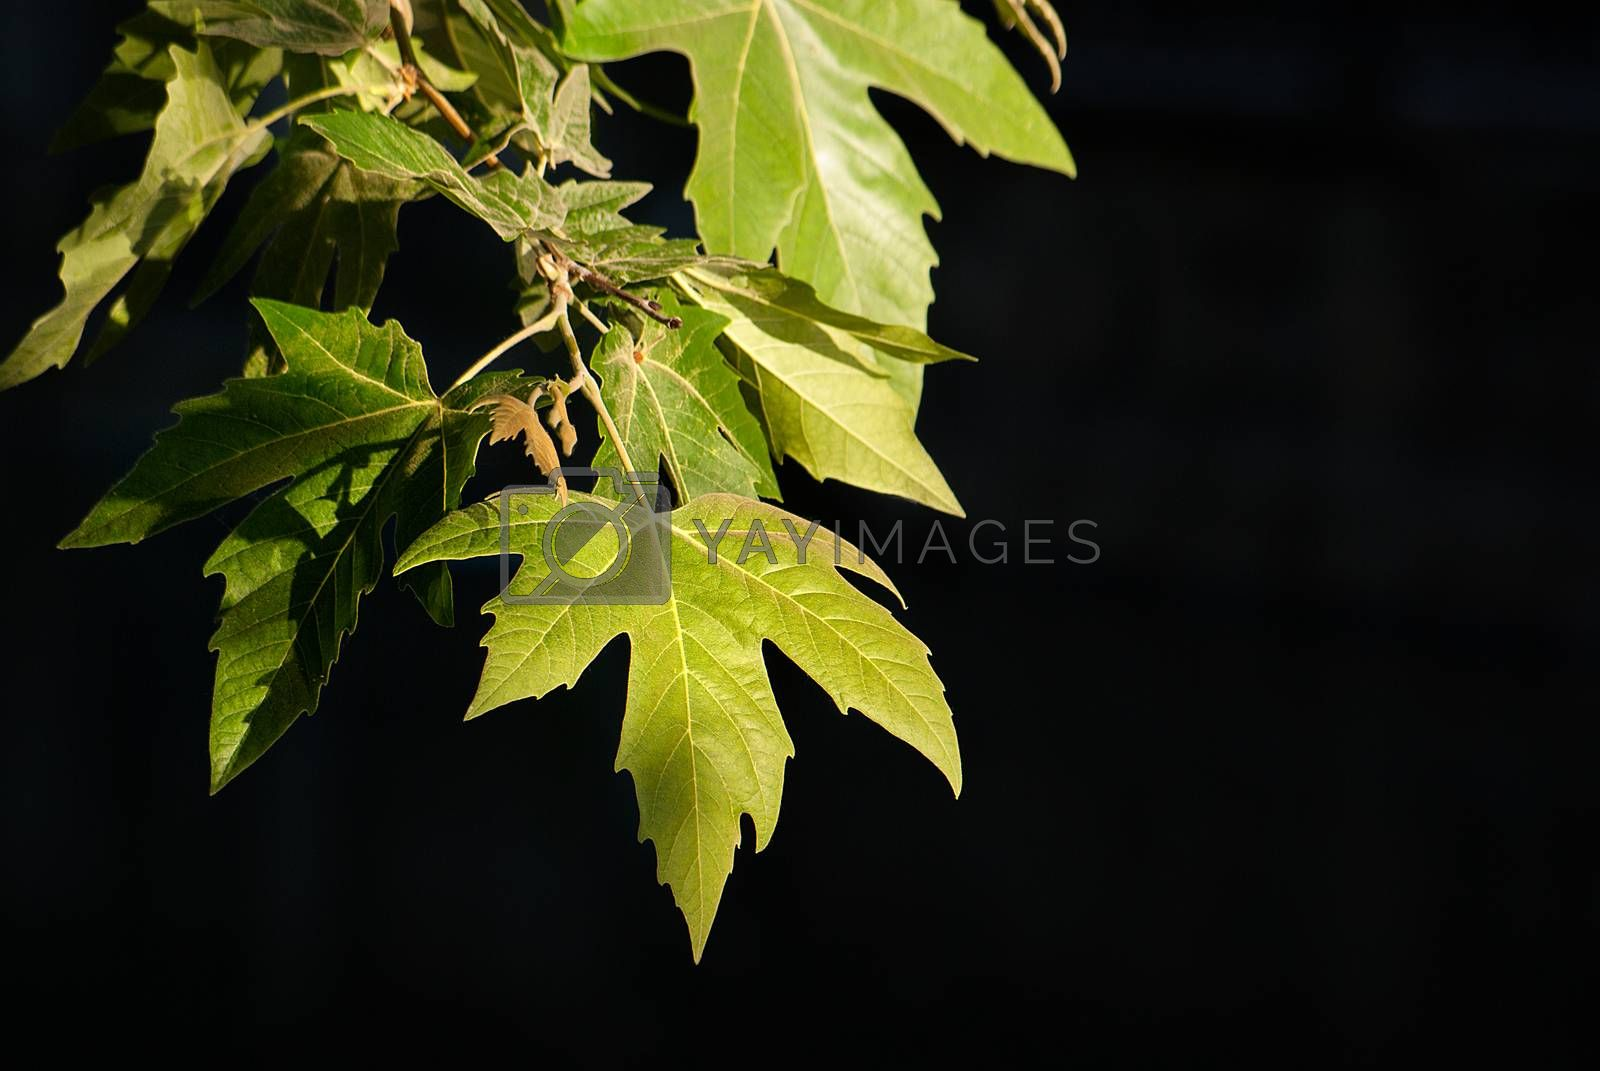 The spring leaves on a dark background